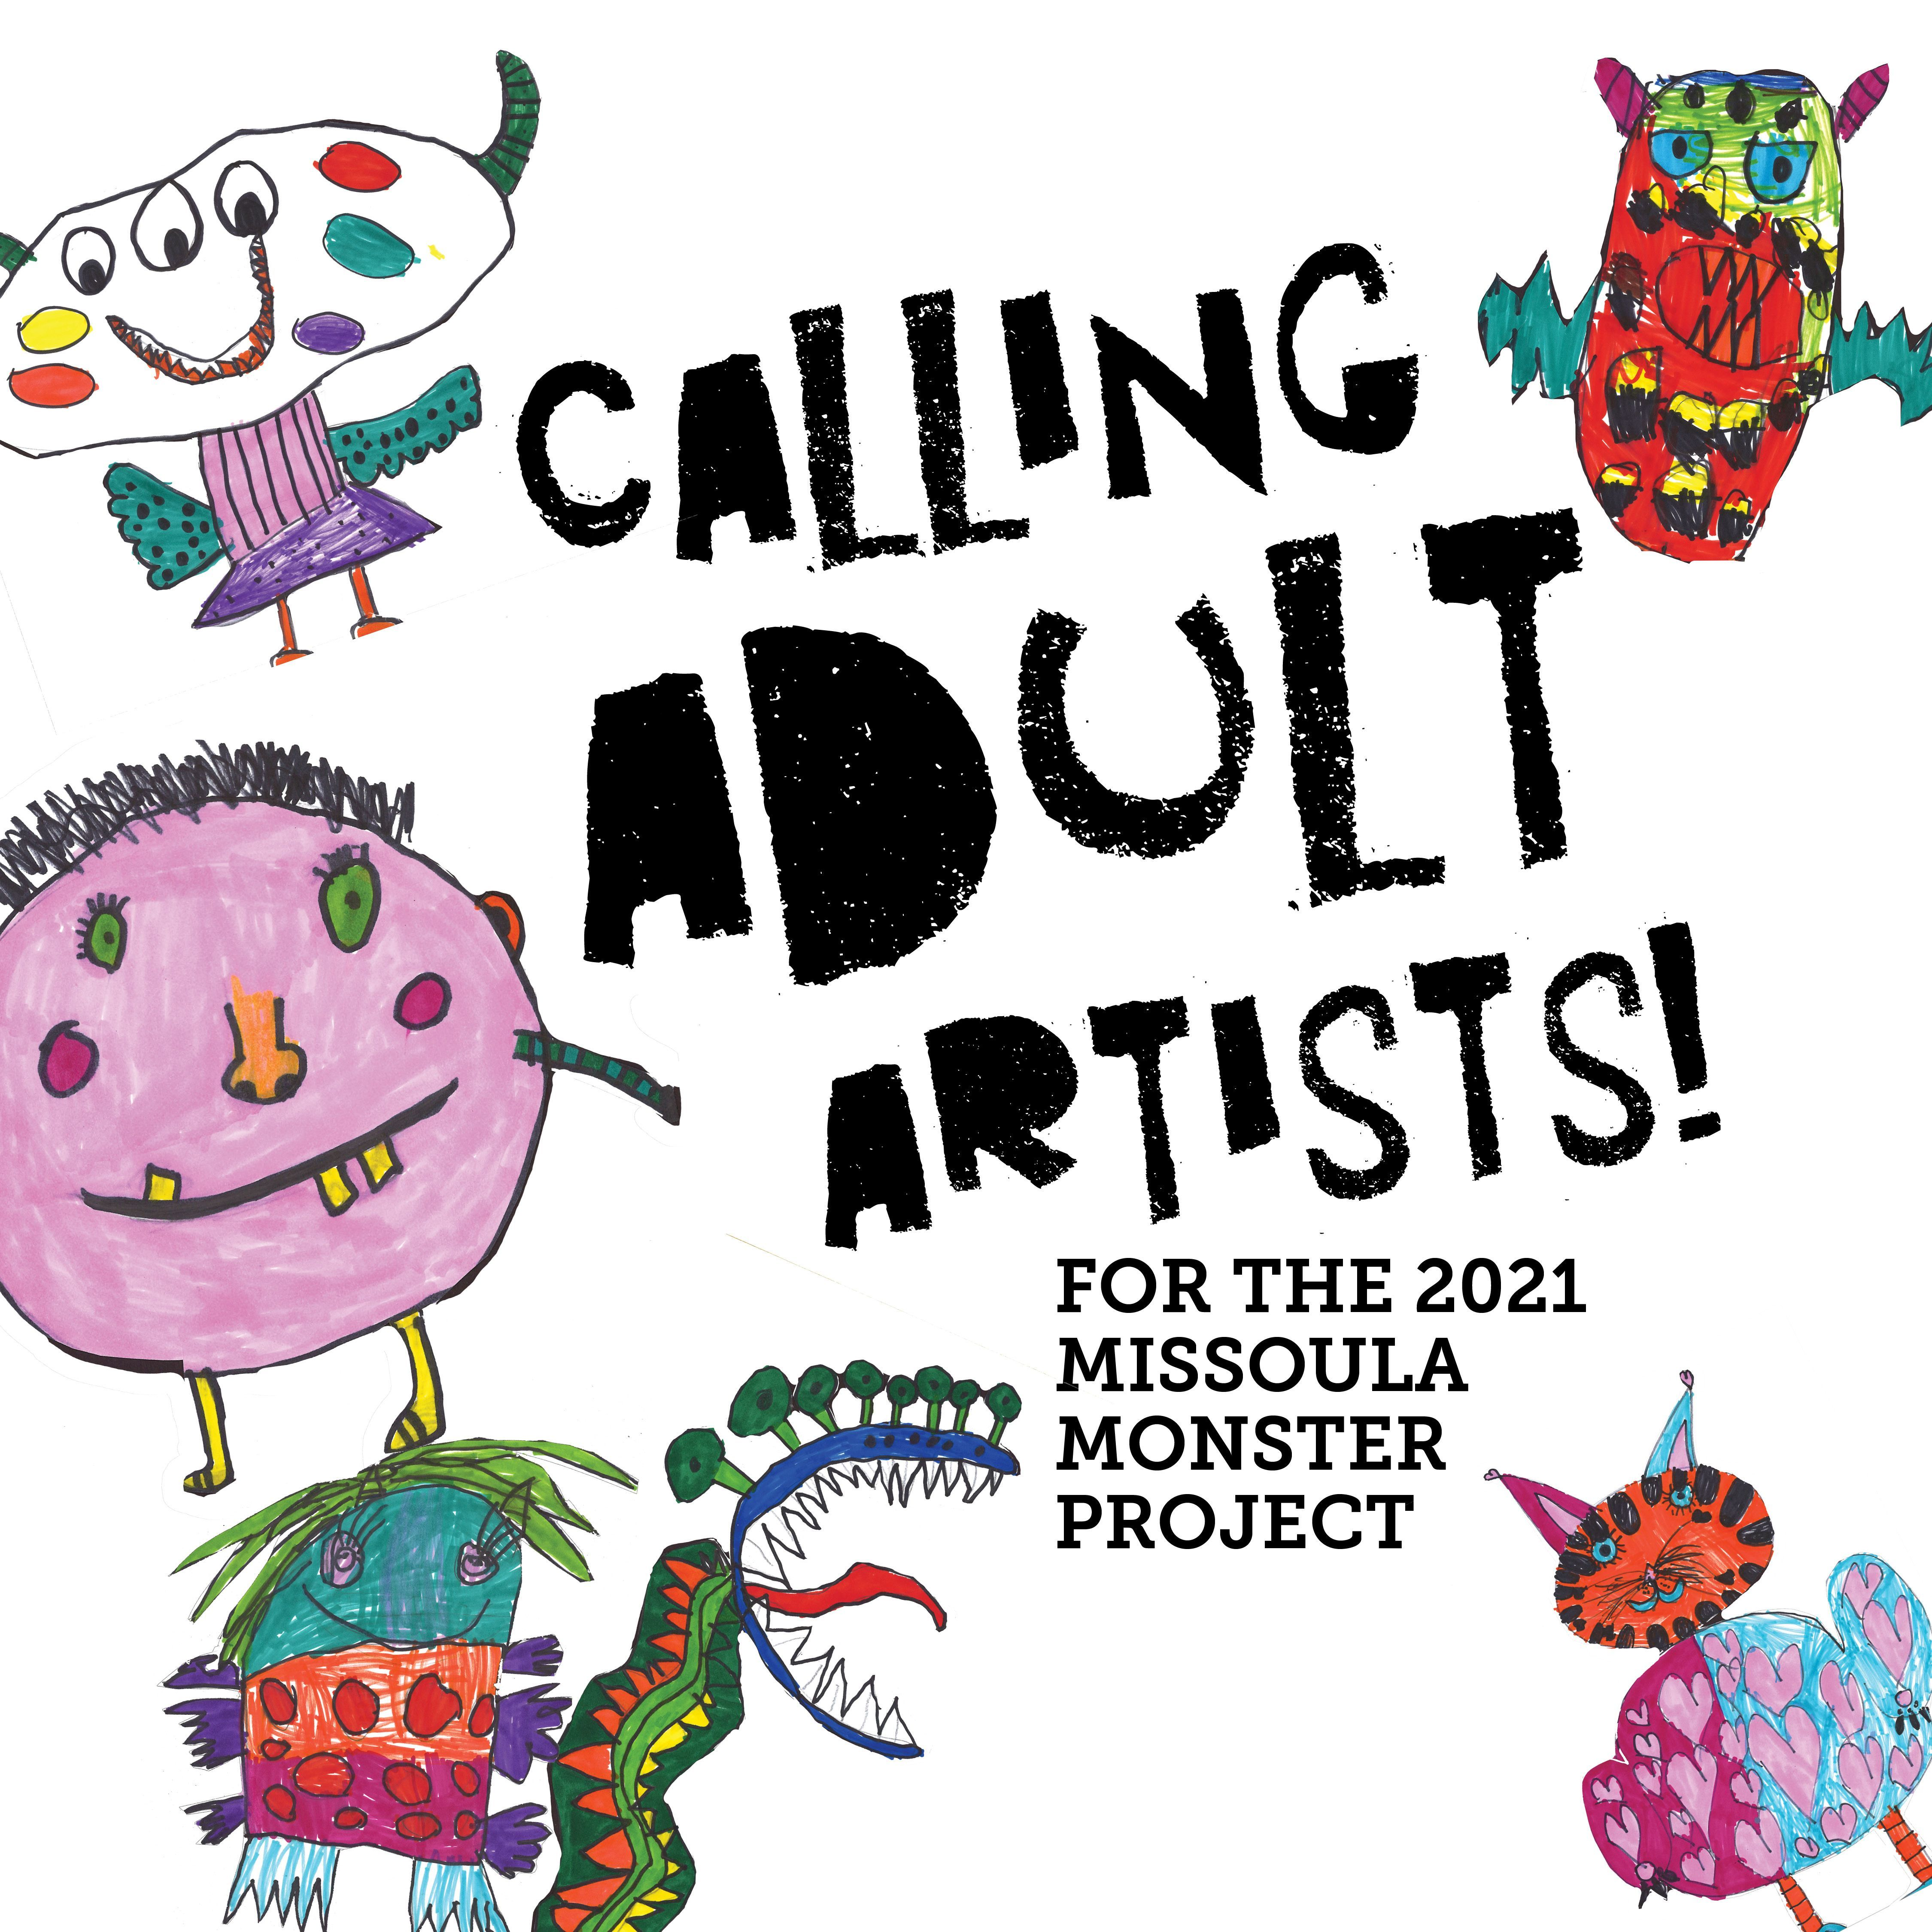 Missoula Monster Project Call to Adult Artists